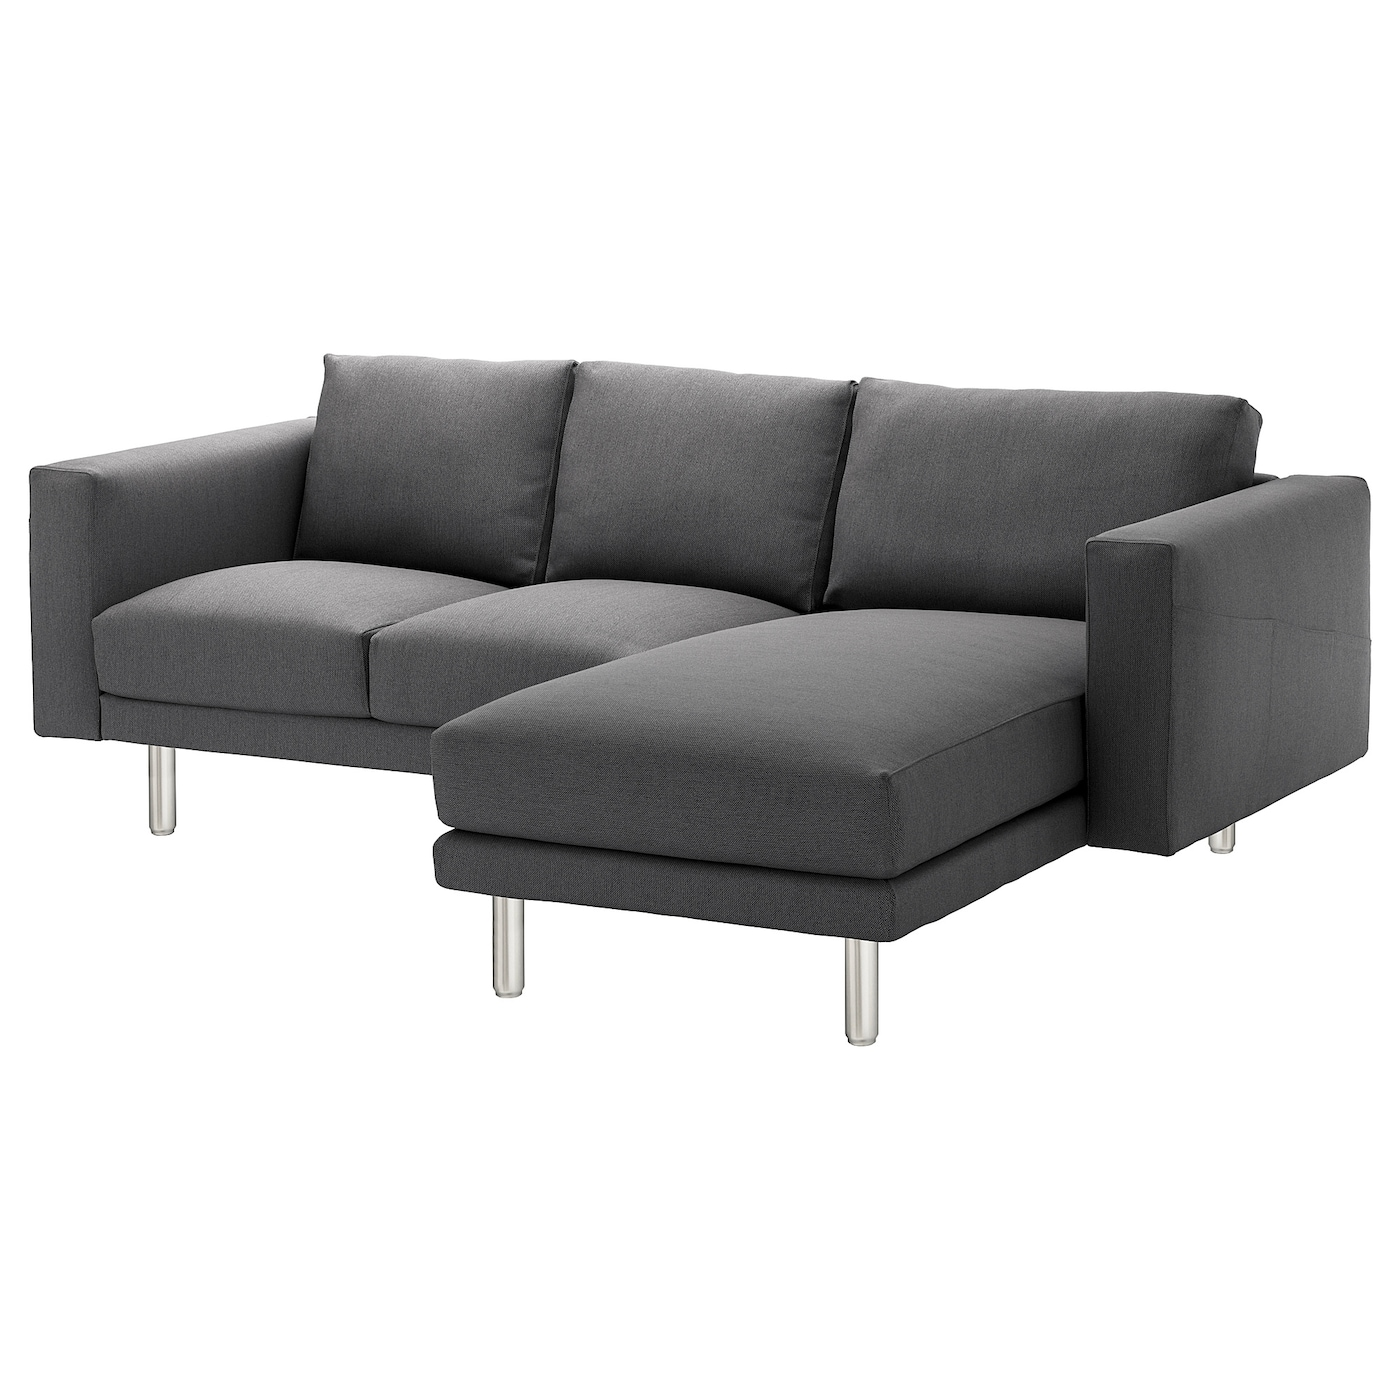 norsborg 3 seat sofa with chaise longue finnsta dark grey. Black Bedroom Furniture Sets. Home Design Ideas